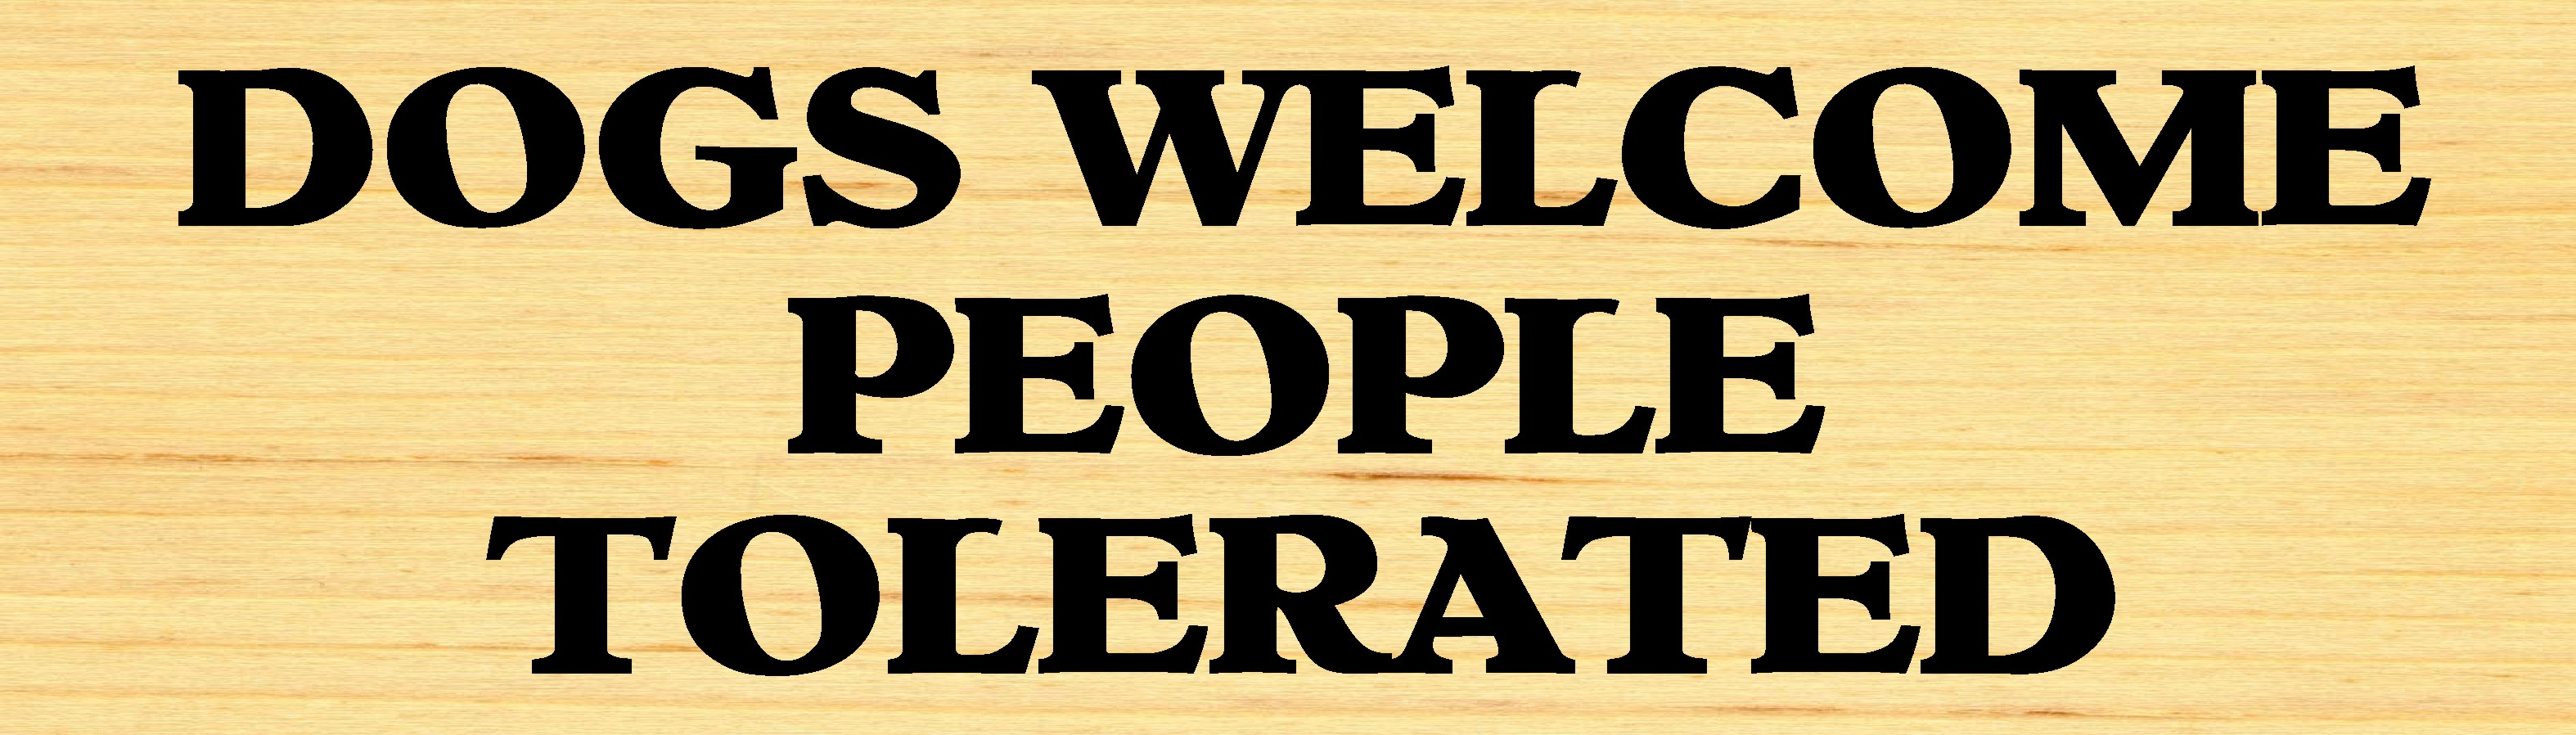 "DOGS WELCOME PEOPLE TOLERATED 10.5"" X 3"" WOODEN BLOCK SIGN"